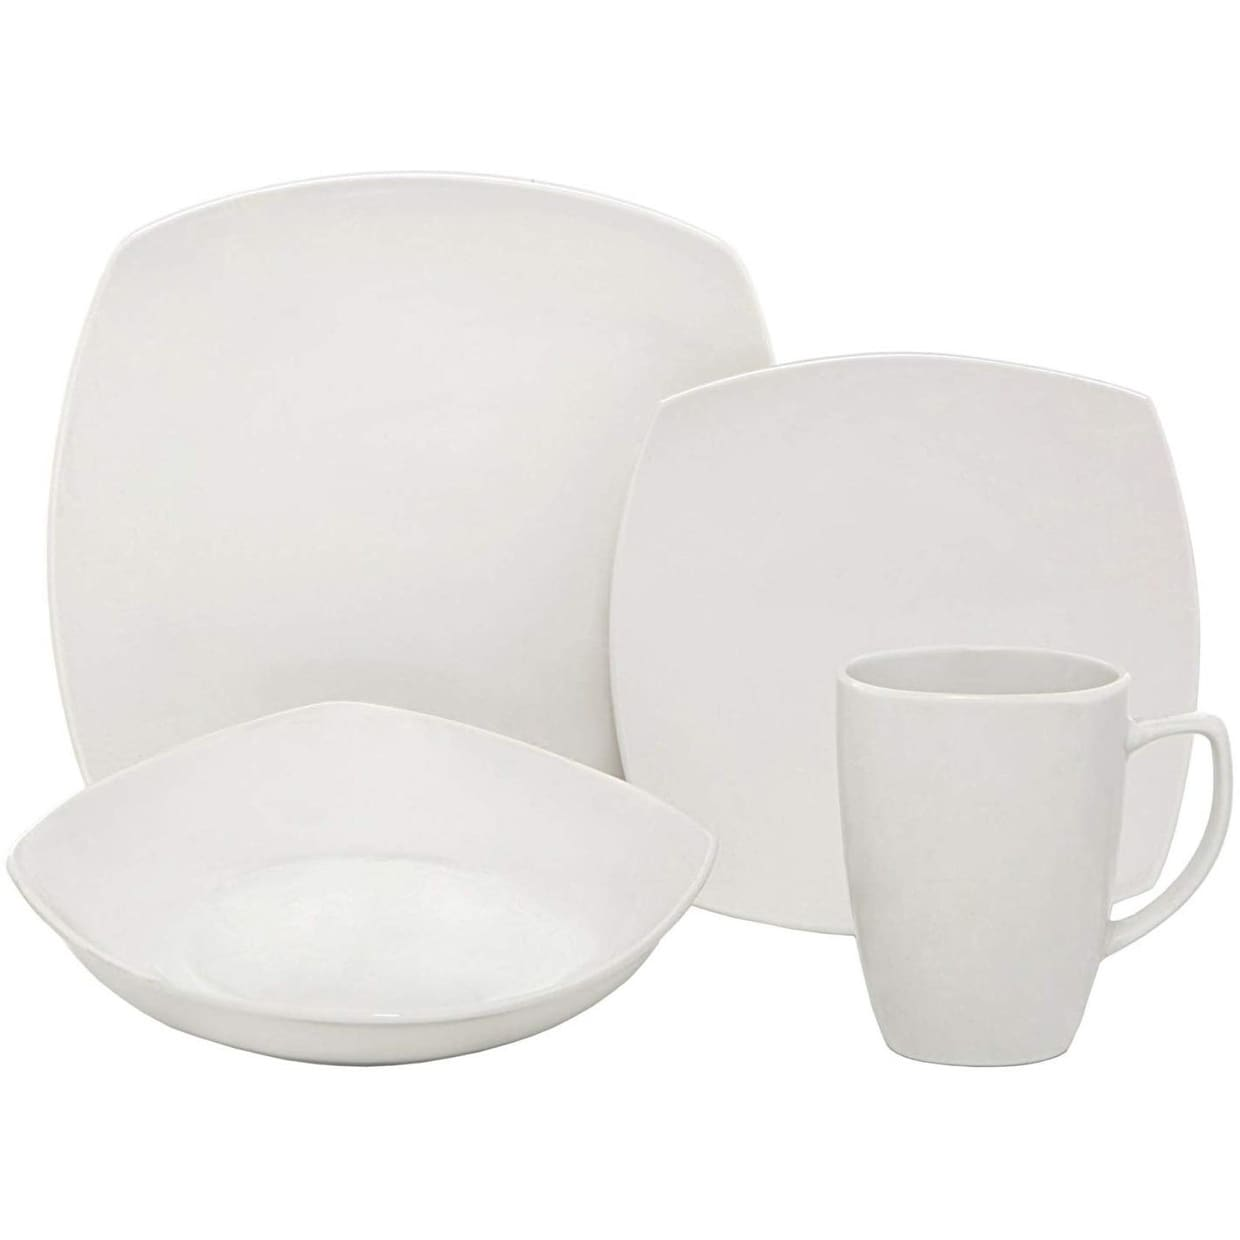 Melange 16-Pcs Square Porcelain Dinnerware Set (White), Service for 4, (16 Each)